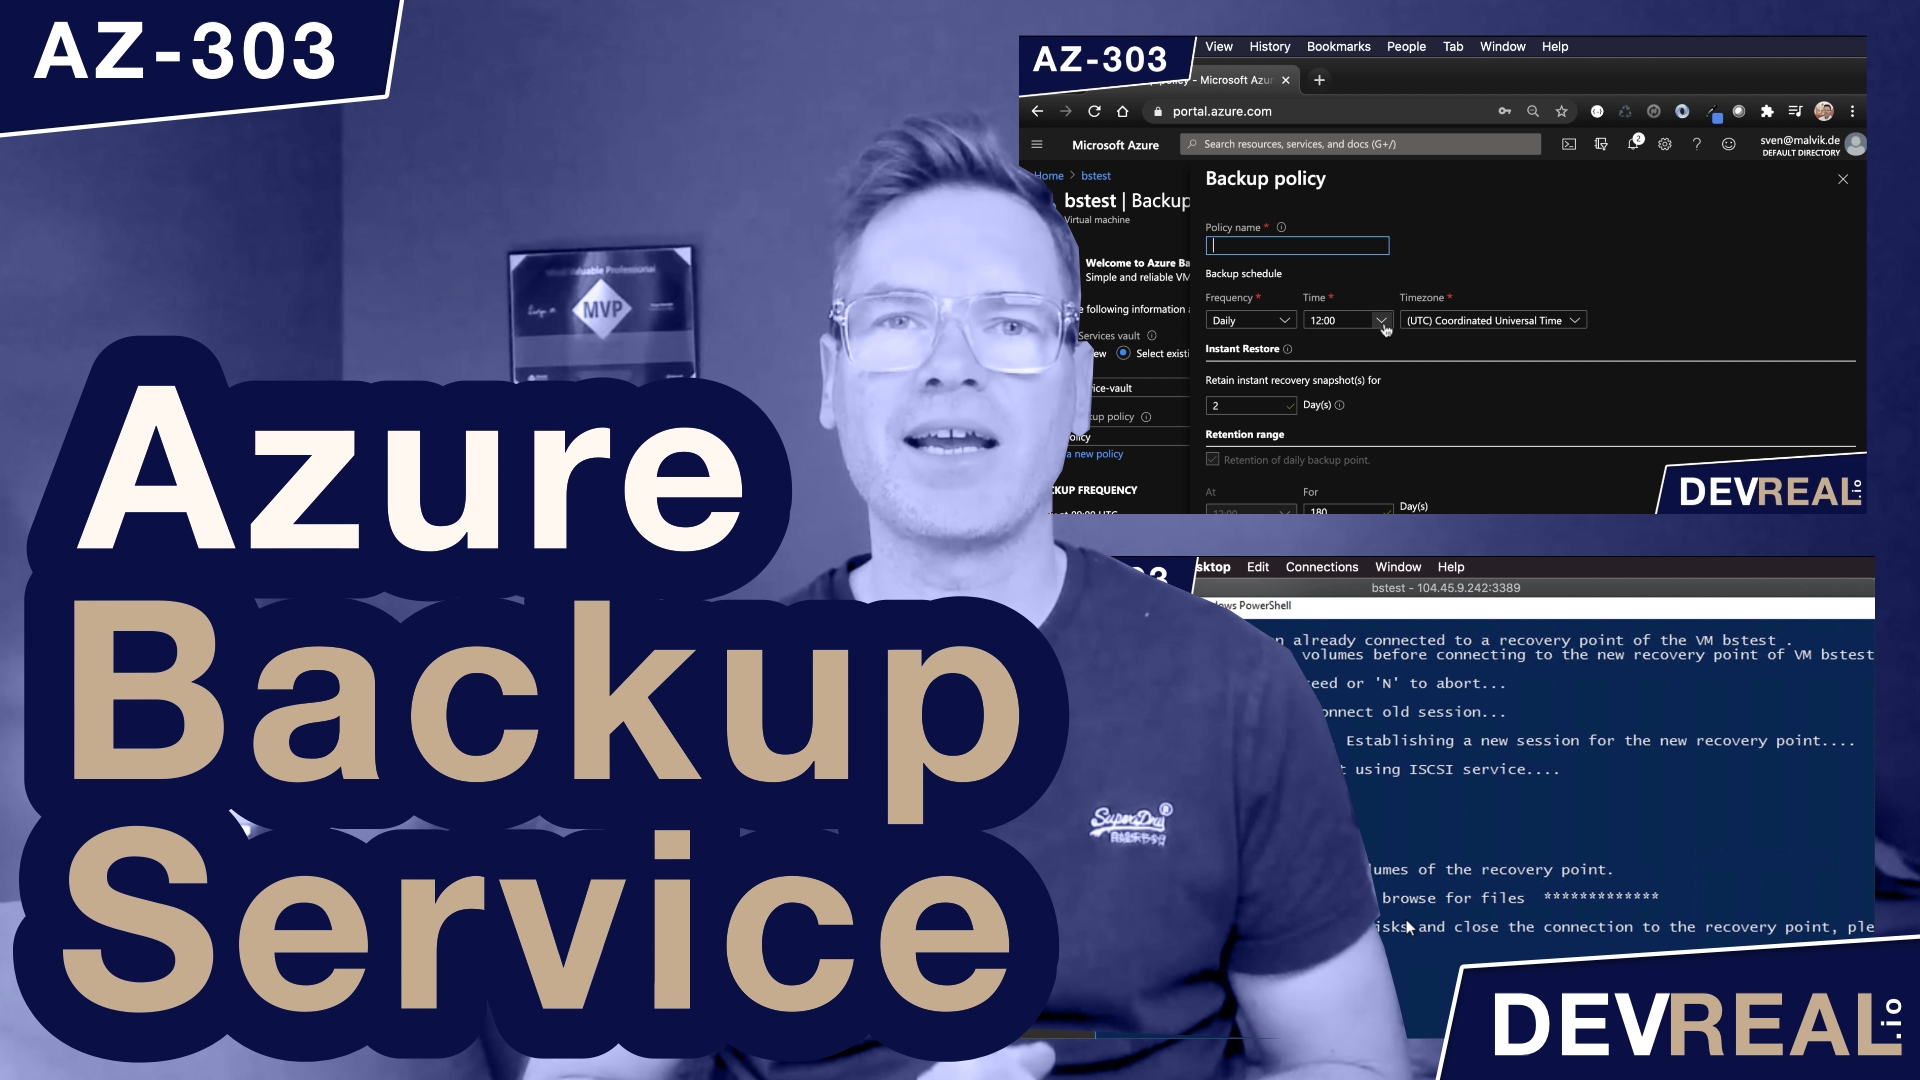 How to Recover a Virtual Machine with Azure Backup Service